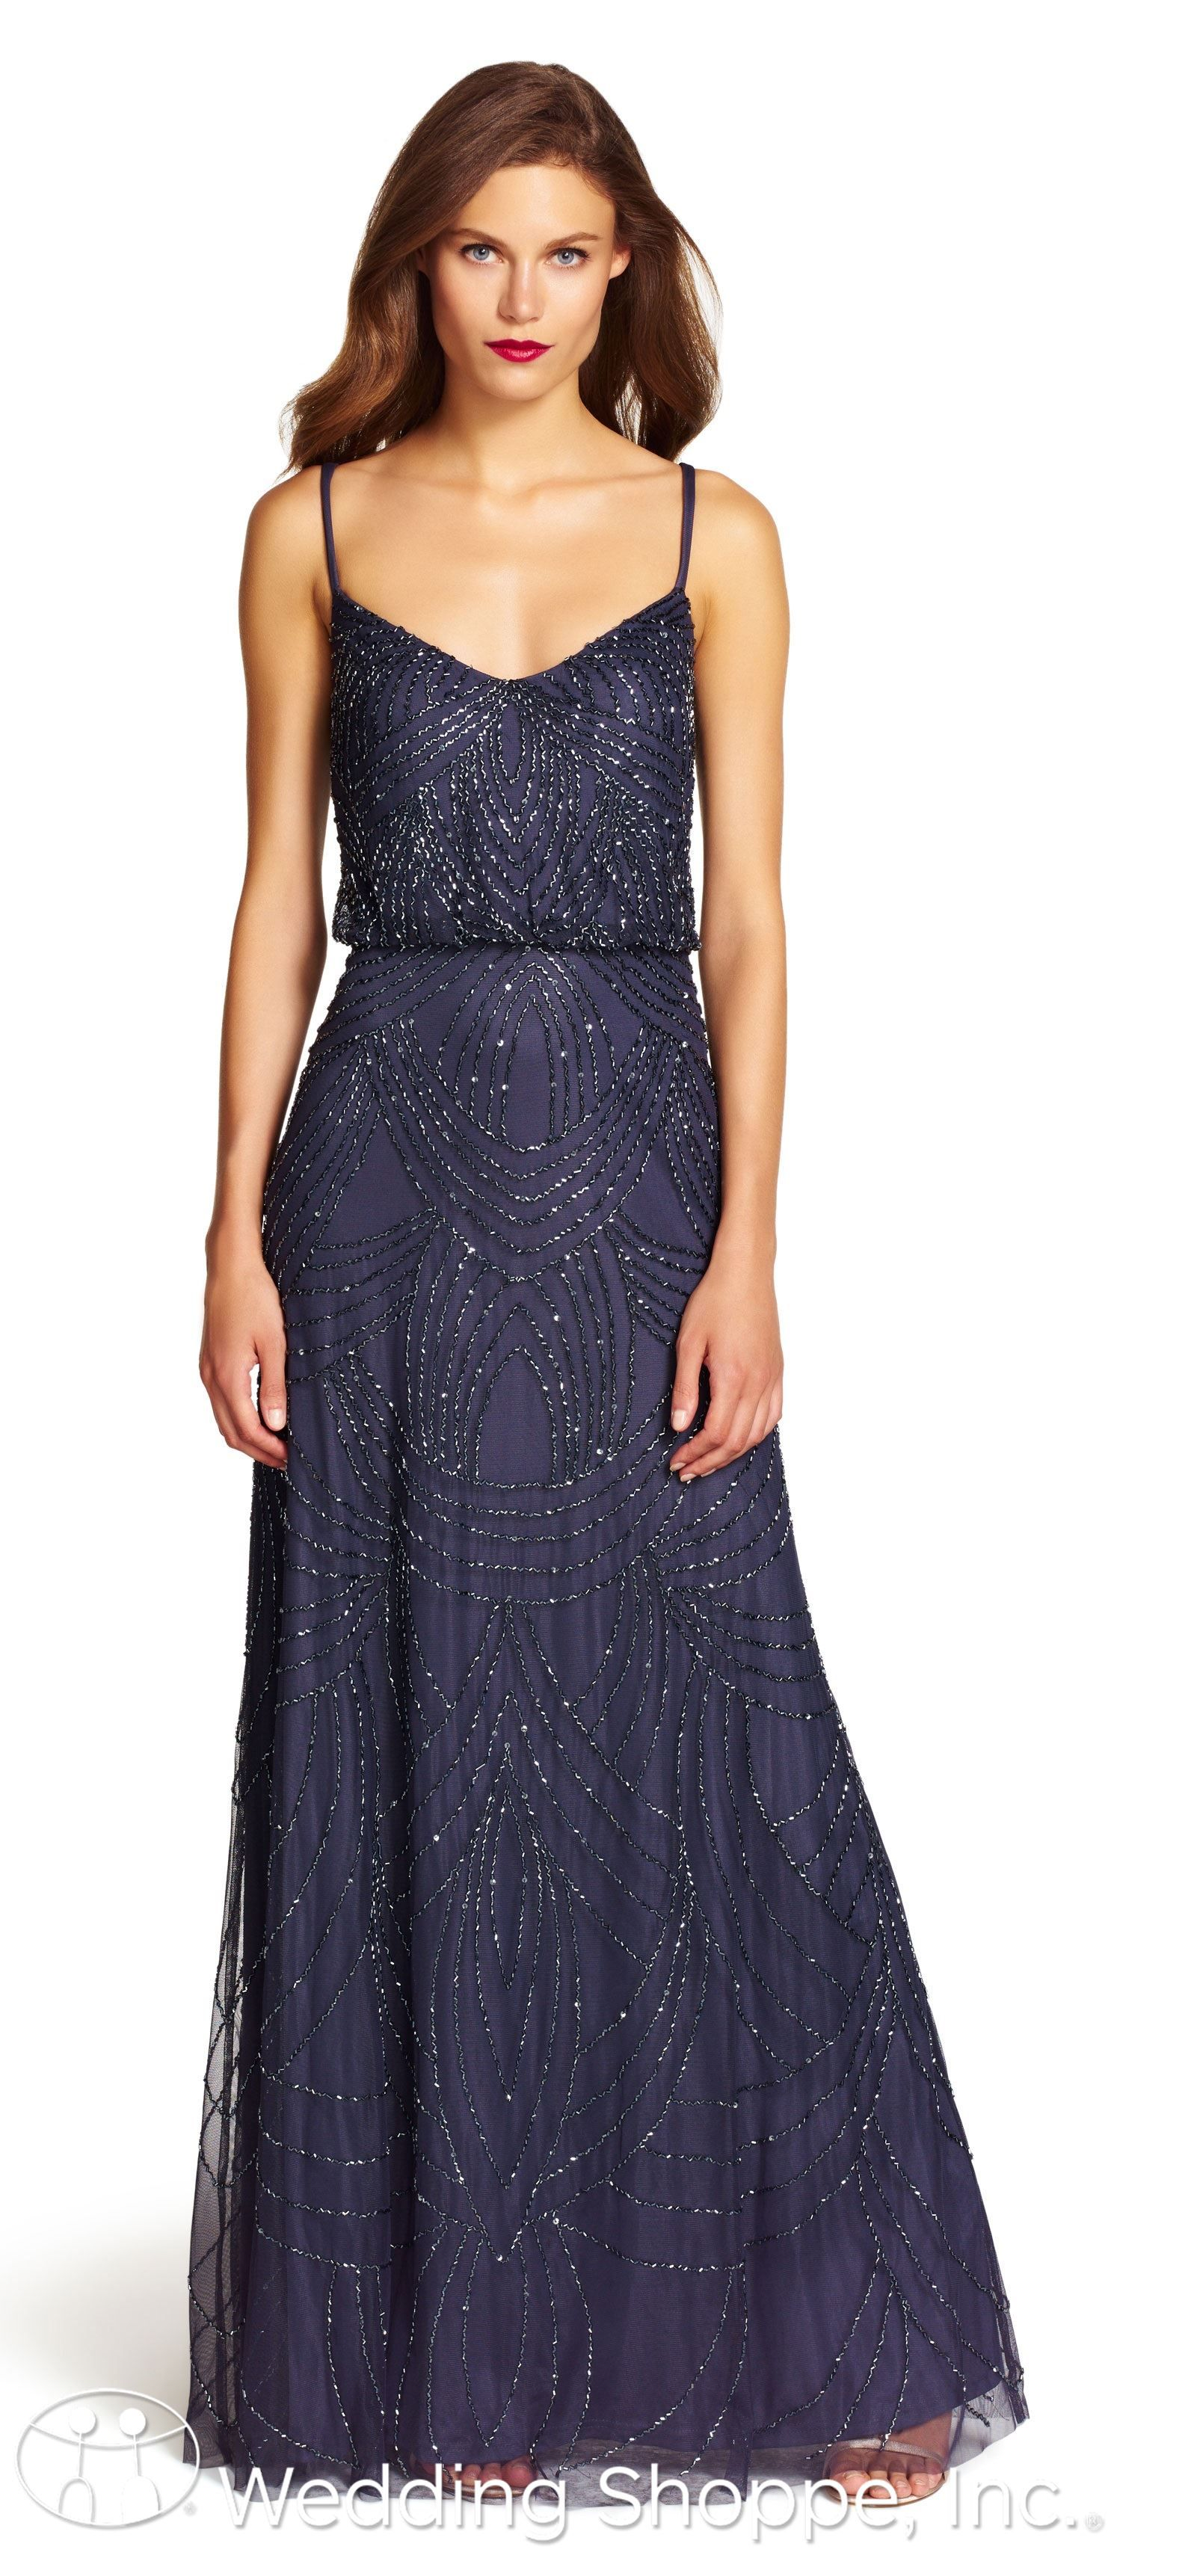 A dazzling navy beaded bridesmaid dress from Adrianna Papell ...